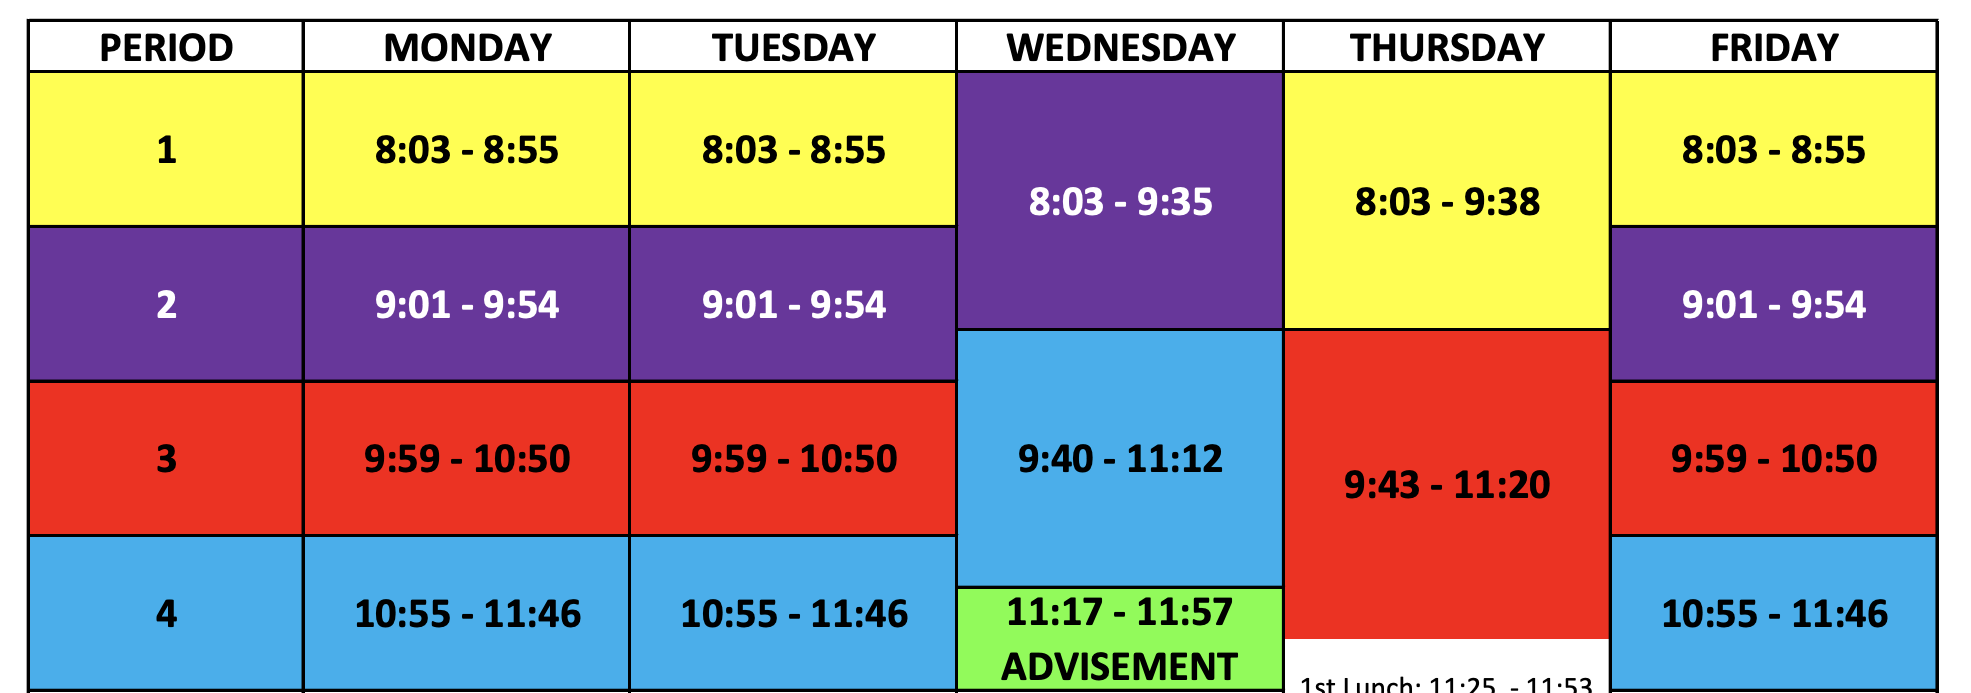 Considerations for a High School Hybrid Bell Schedule for Band and Fine Arts